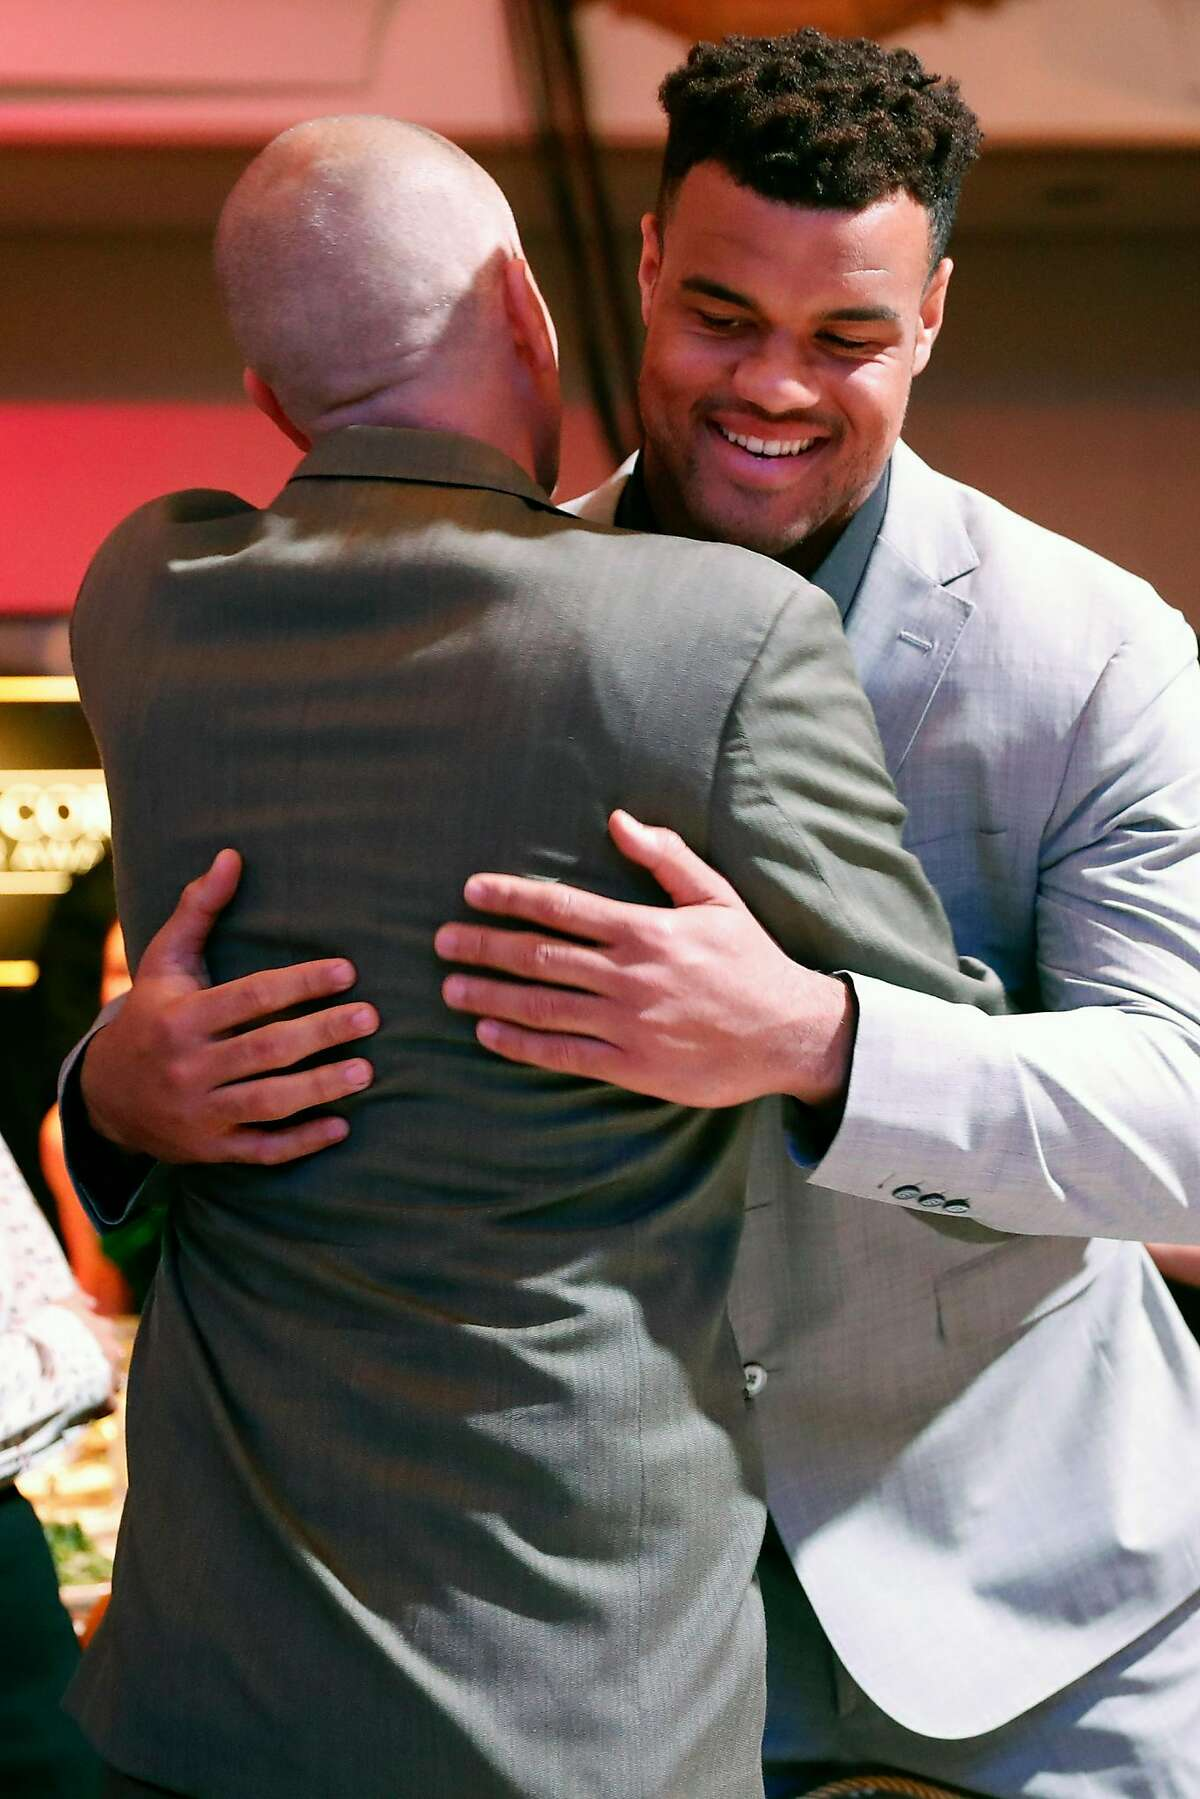 49ers' Arik Armstead greets his high school coach Joe Cattolico at Game Changers banquet at Fairmont Hotel in San Francisco, Calif., on Thursday, January 23, 2020.